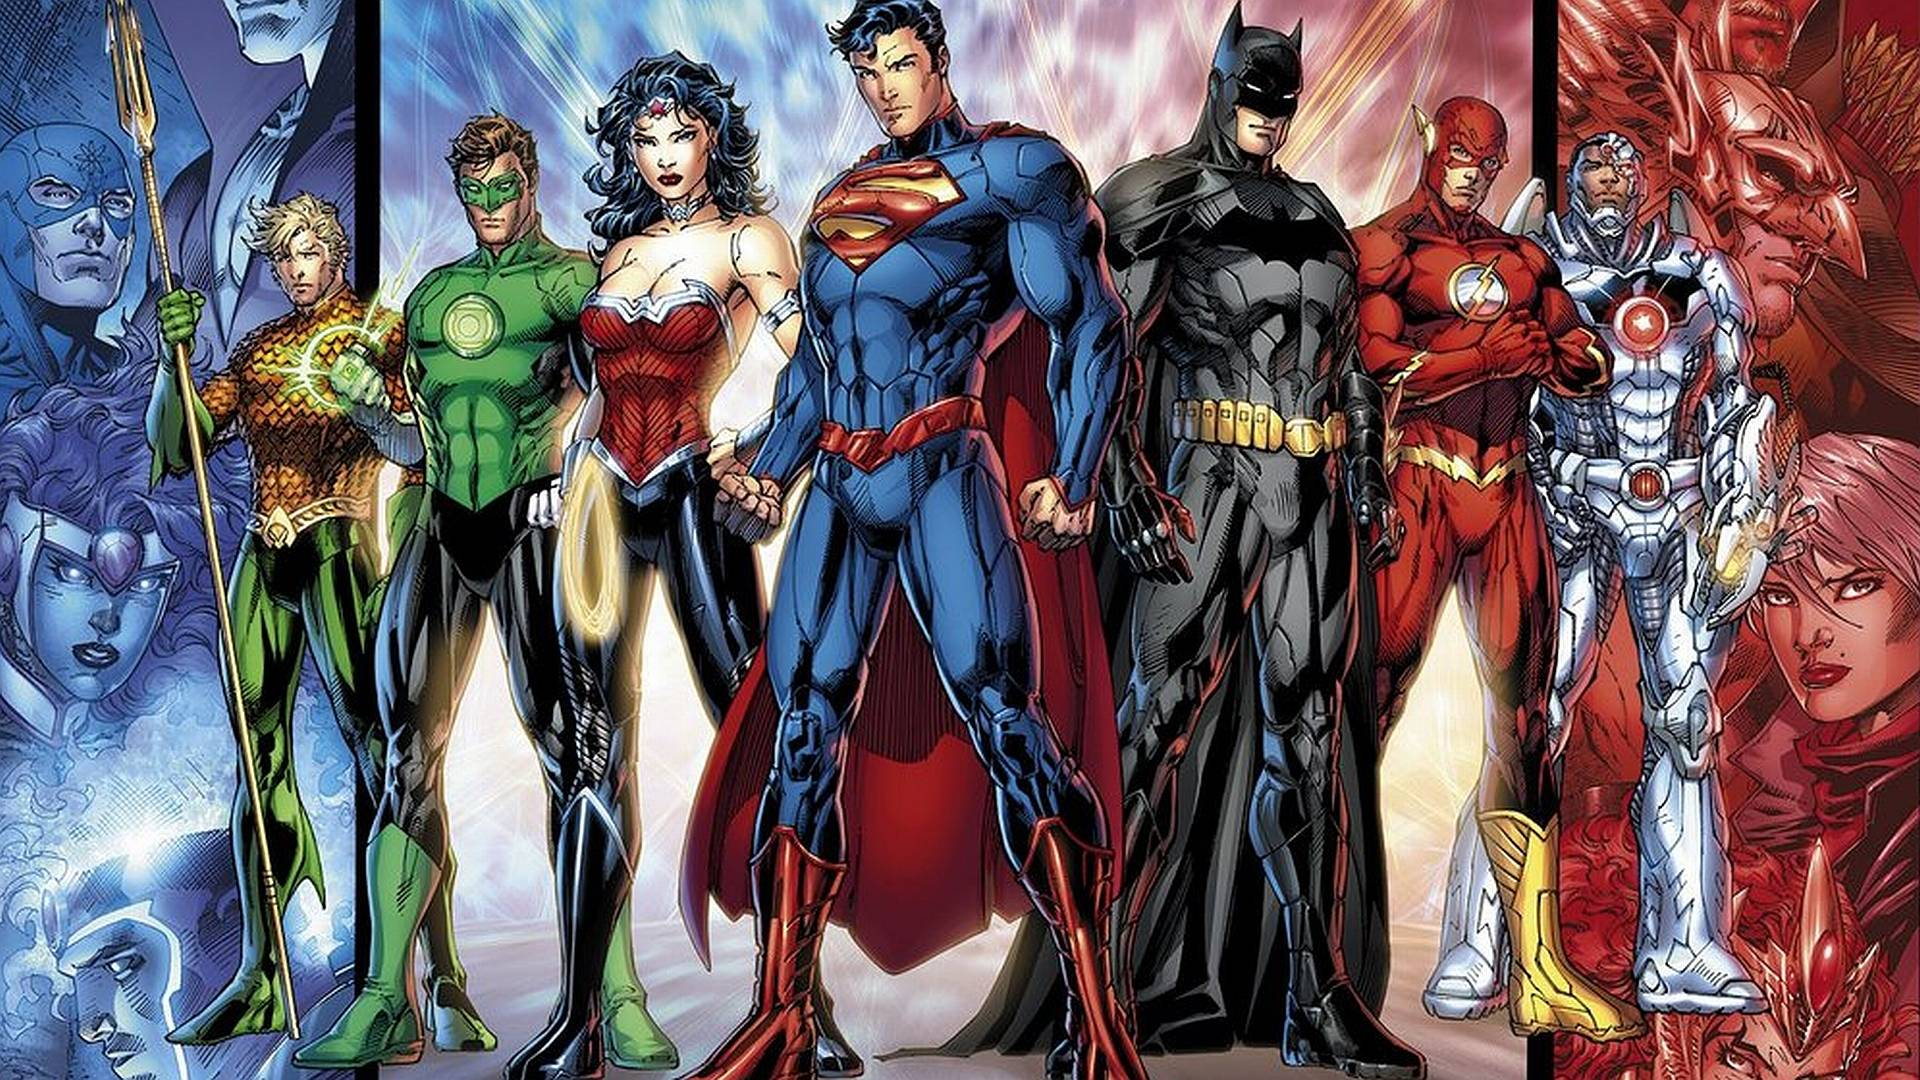 Justice League Computer Wallpapers Desktop Backgrounds 1920x1080